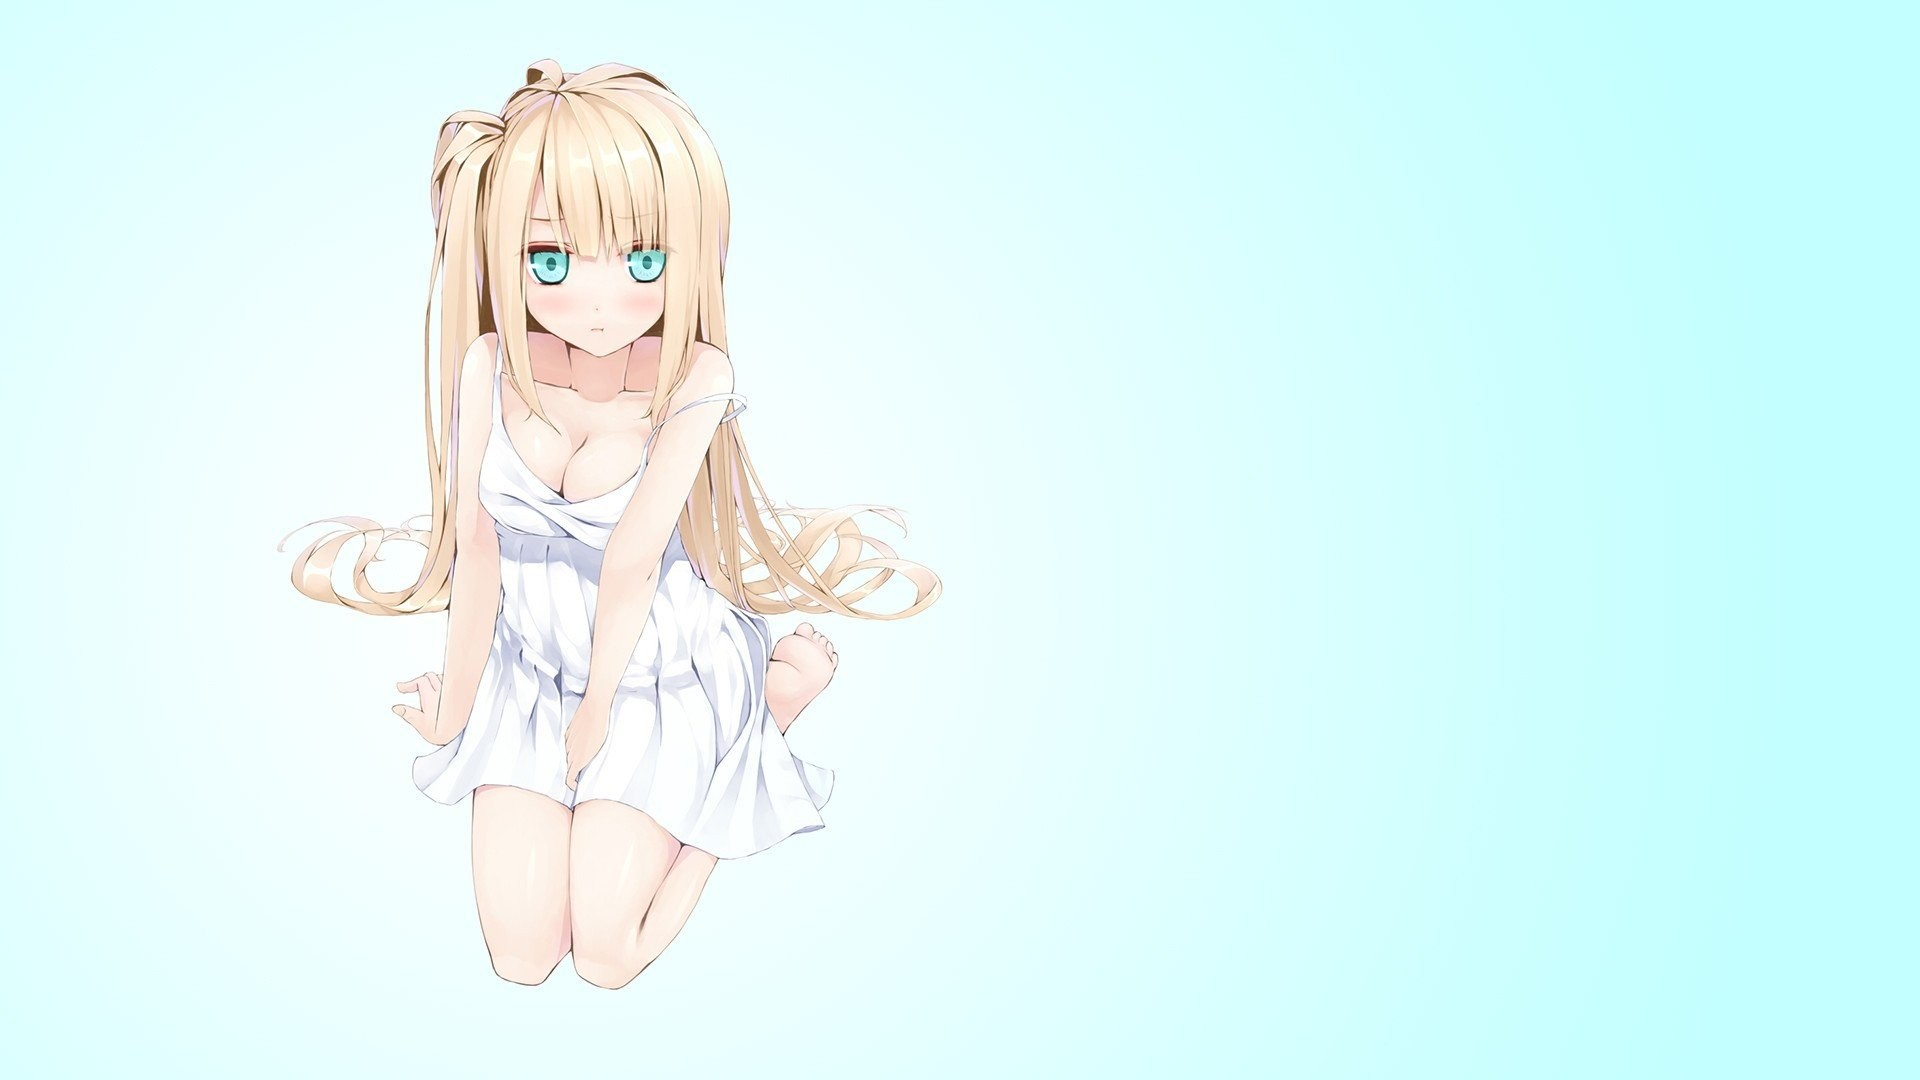 1920x1080 Anime Girls Minimalism Simple Background Twintails ...